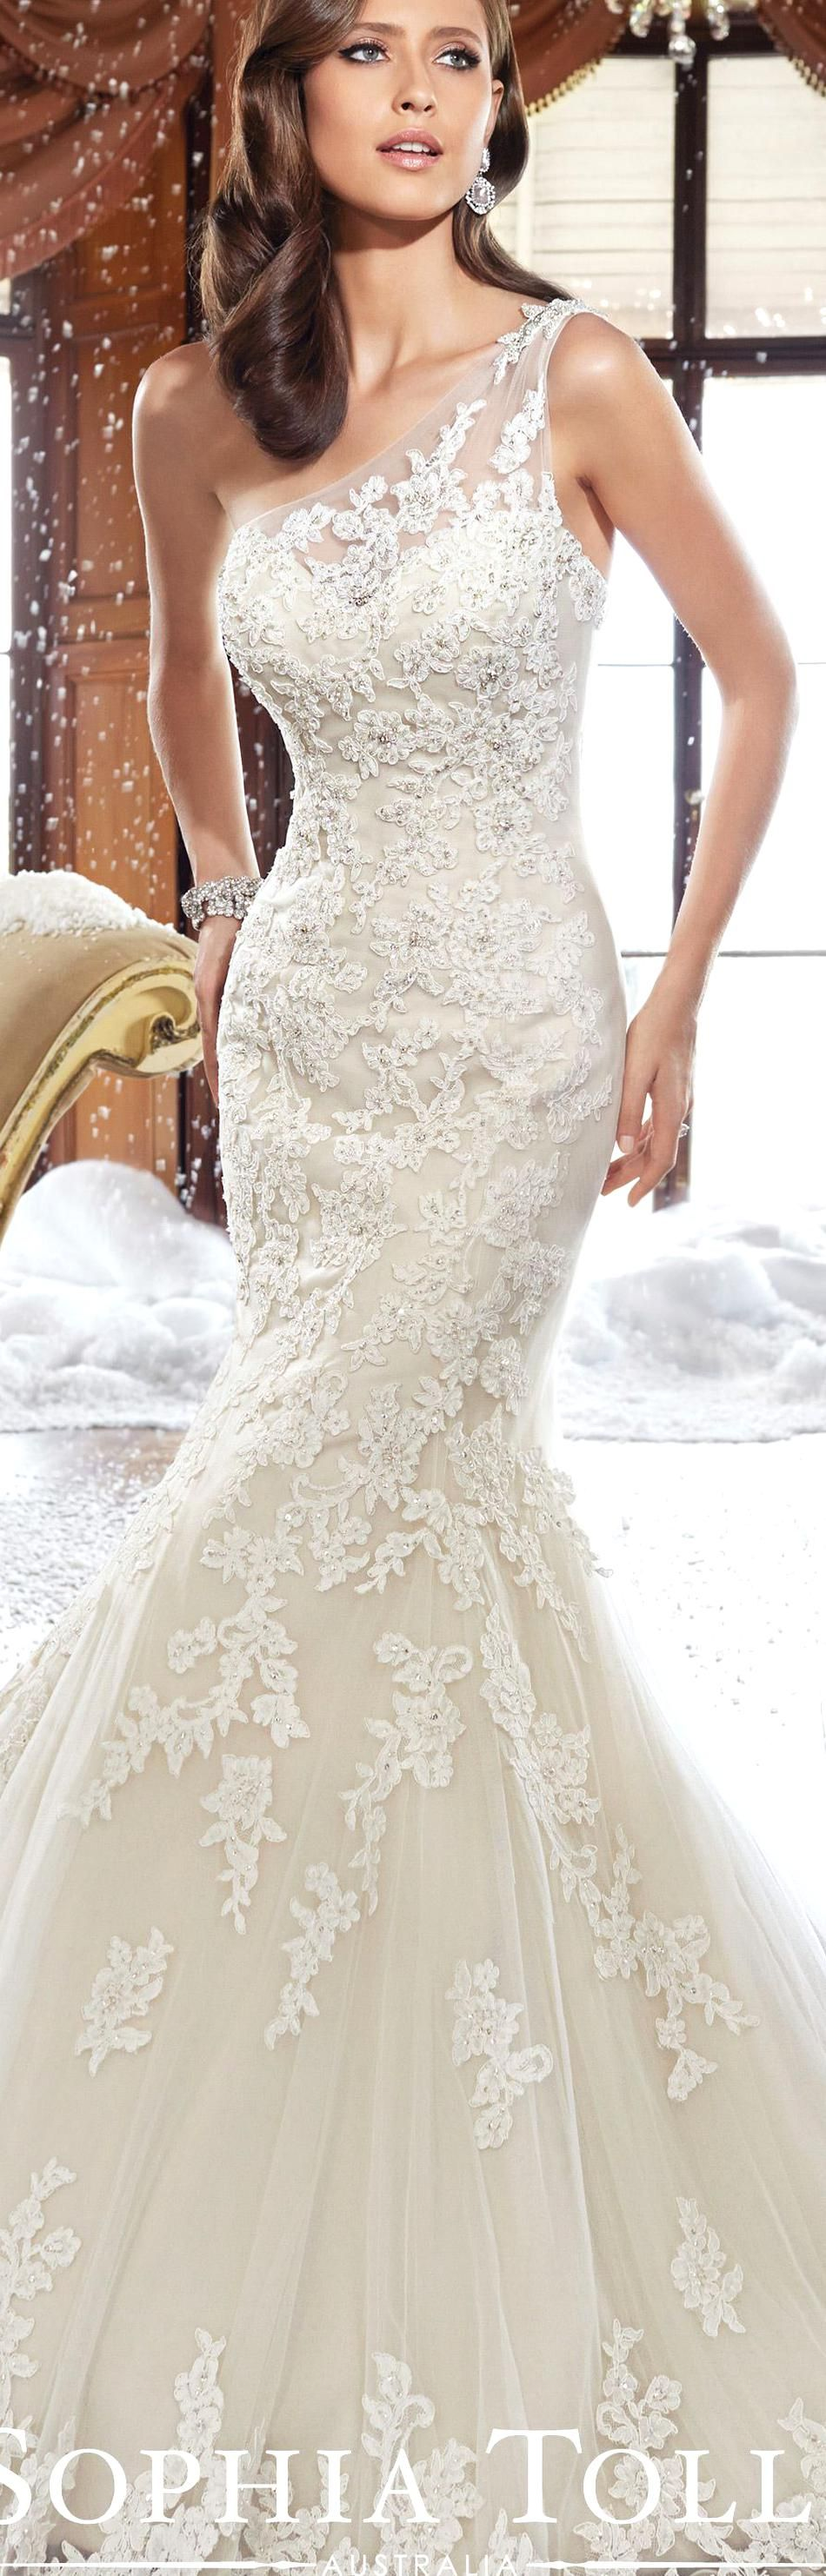 The Sophia Tolli Fall 2015 Wedding Dress Collection